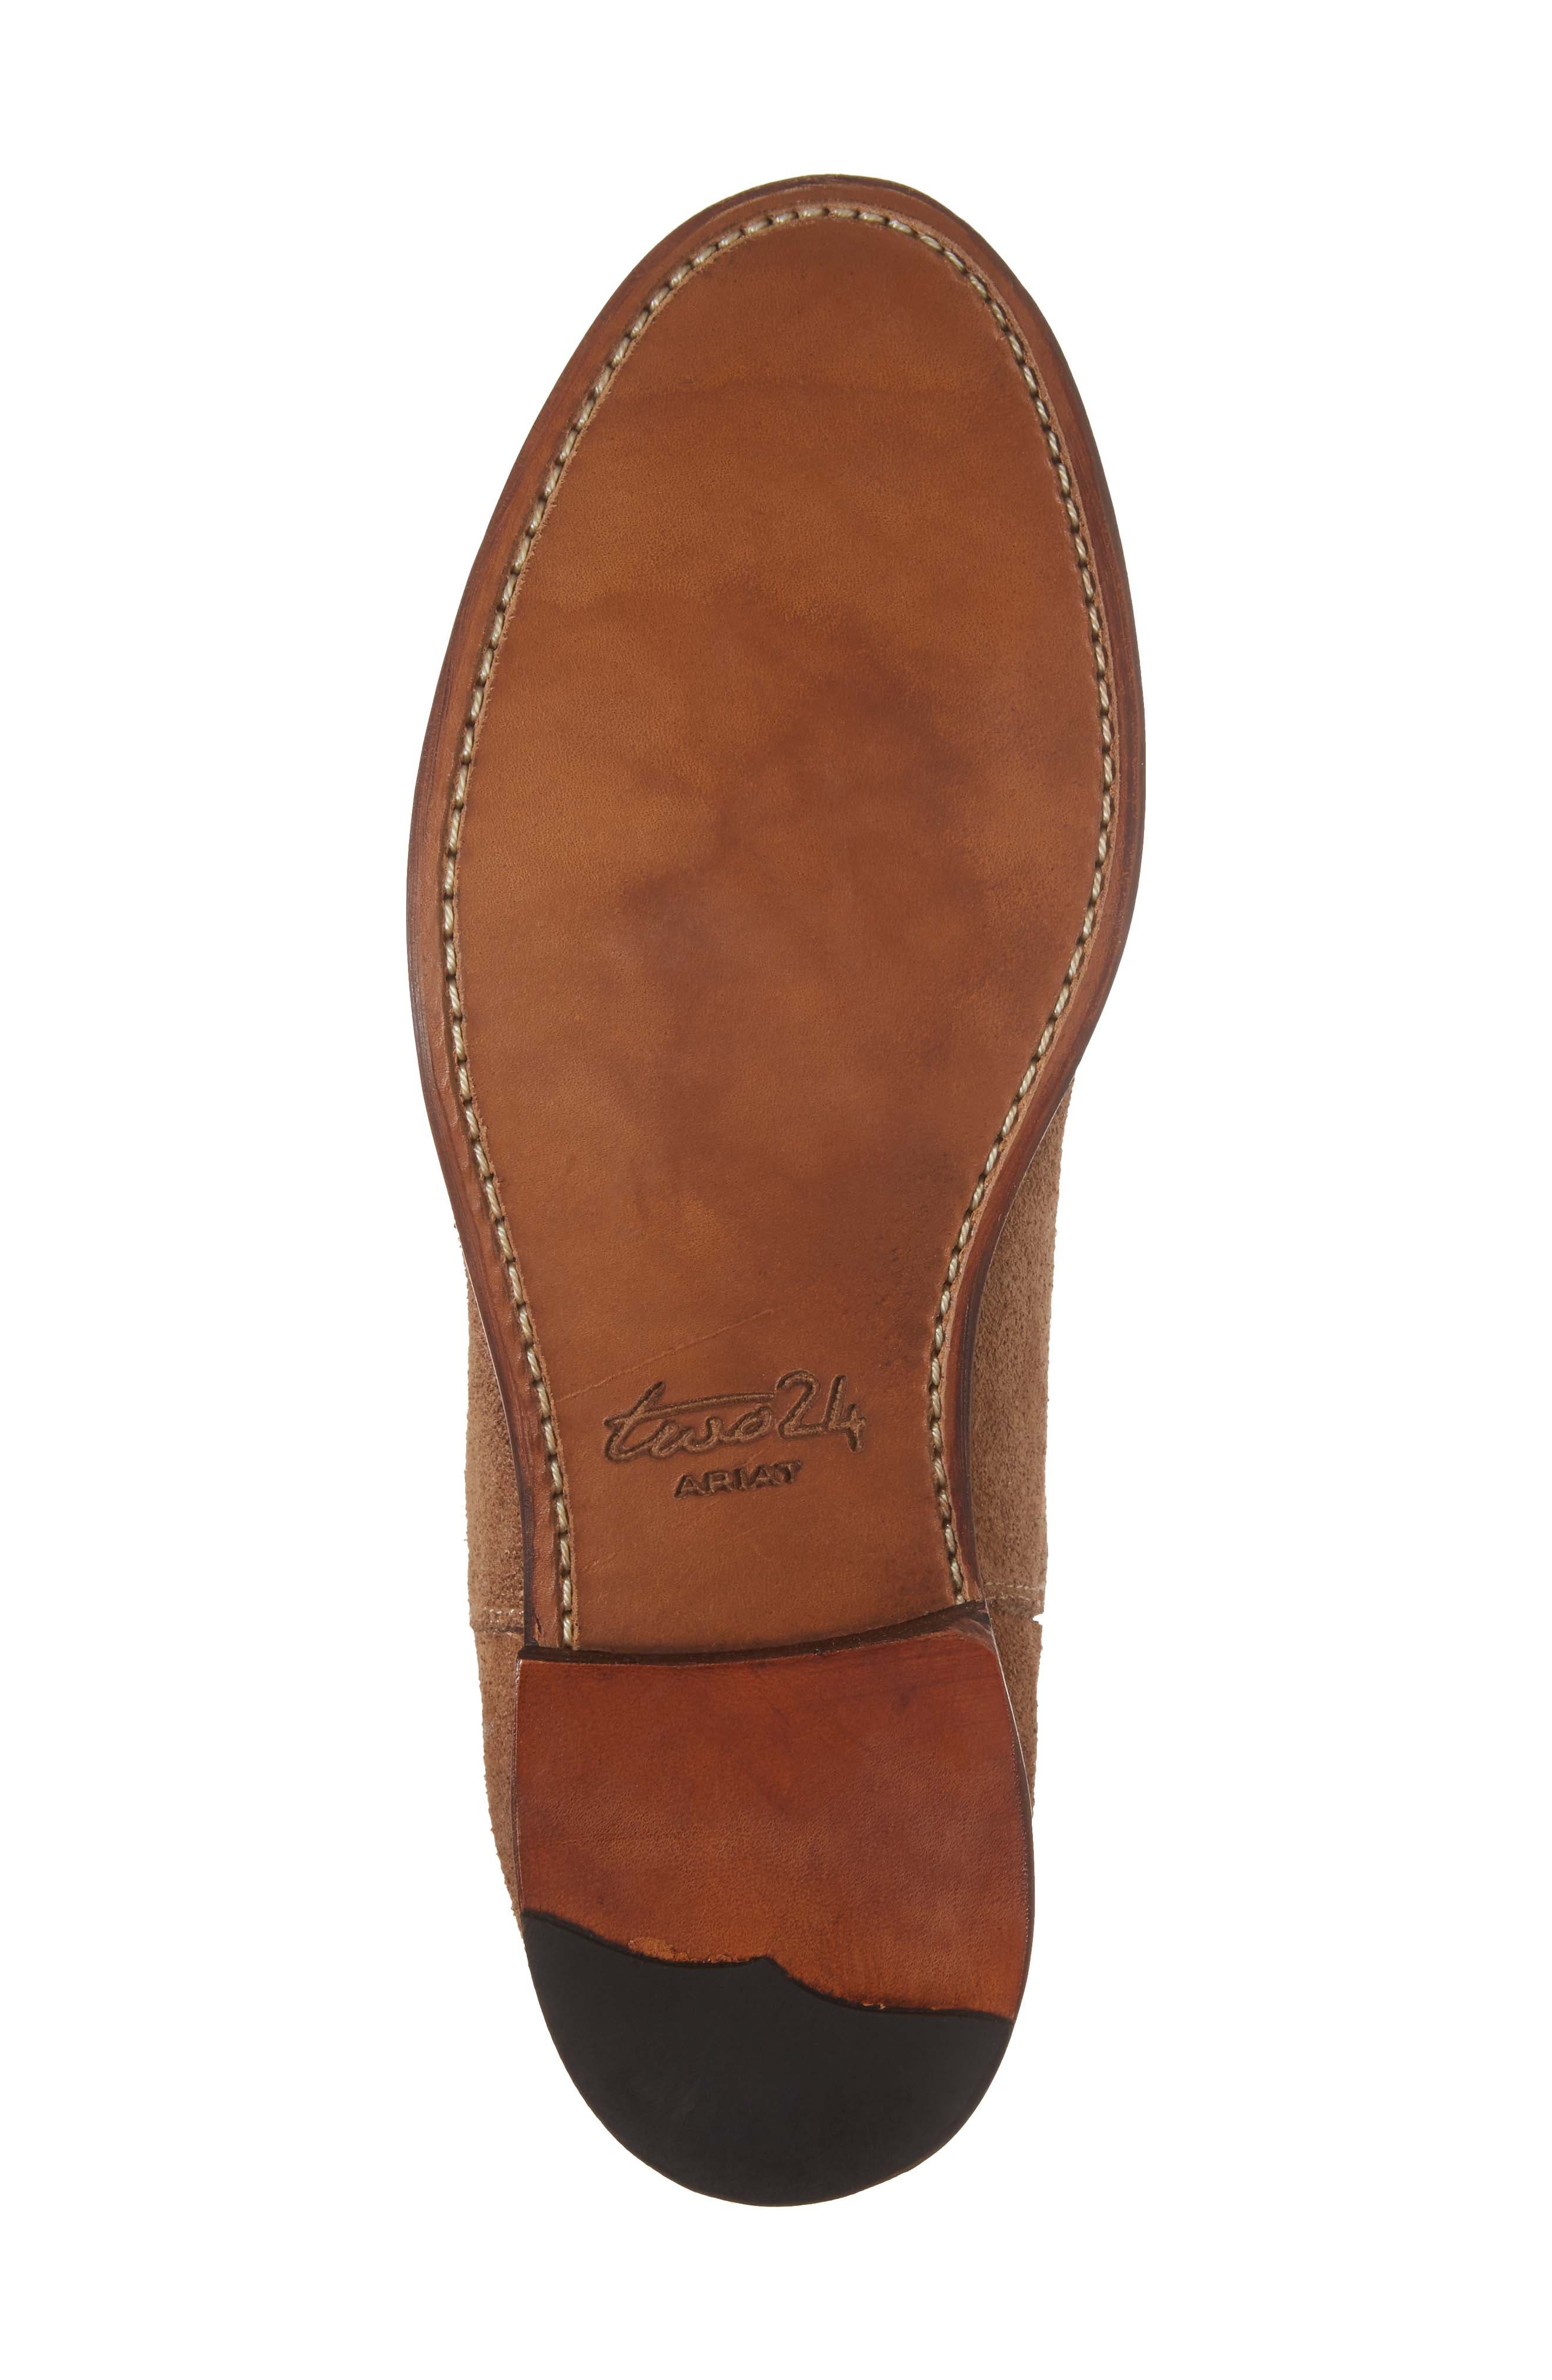 Ariat Maxwell Chelsea Boot,                             Alternate thumbnail 6, color,